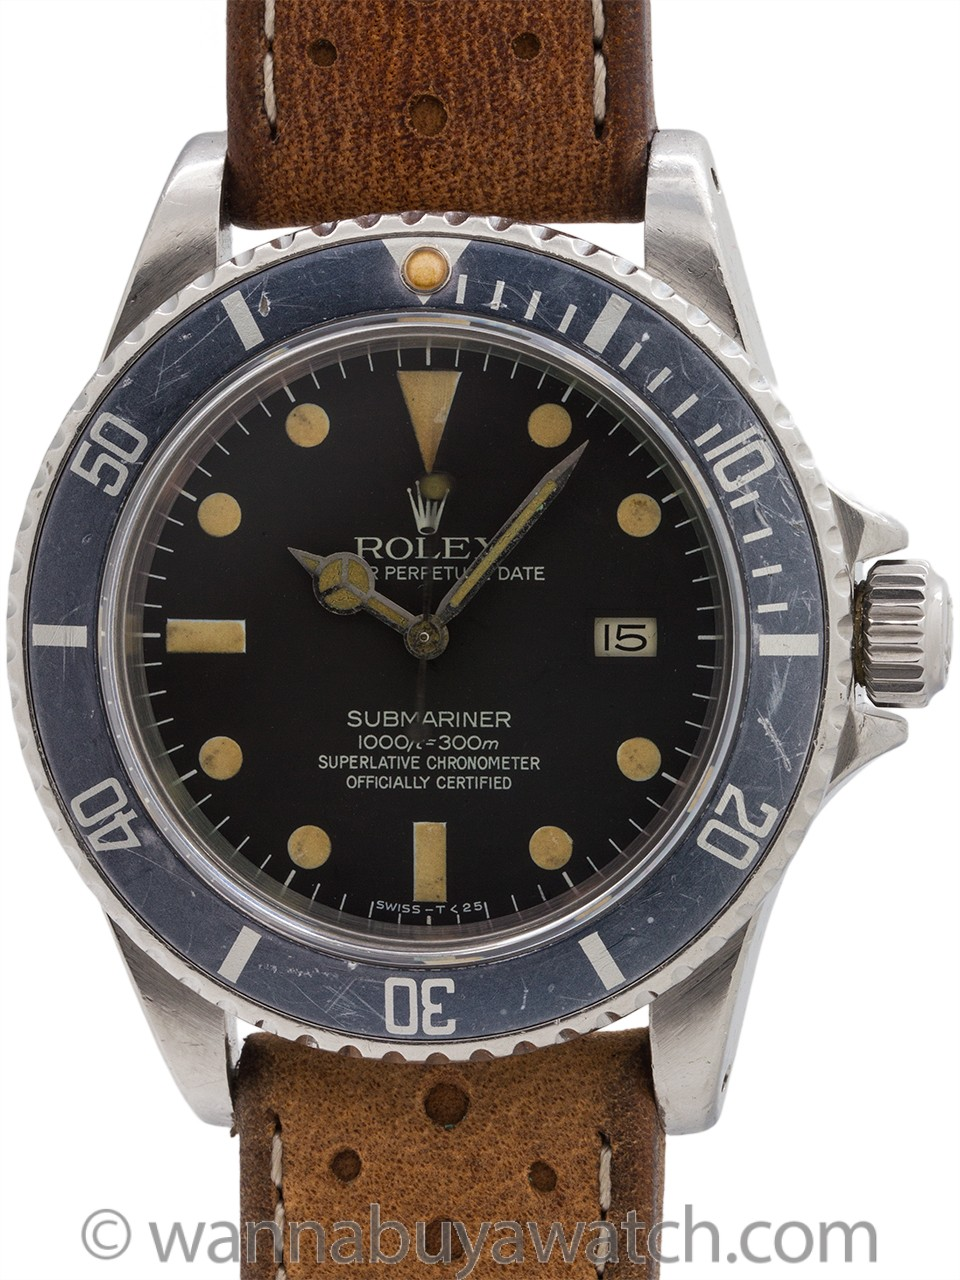 Rolex Submariner ref 16800 Transitional MK III Dial circa 1981